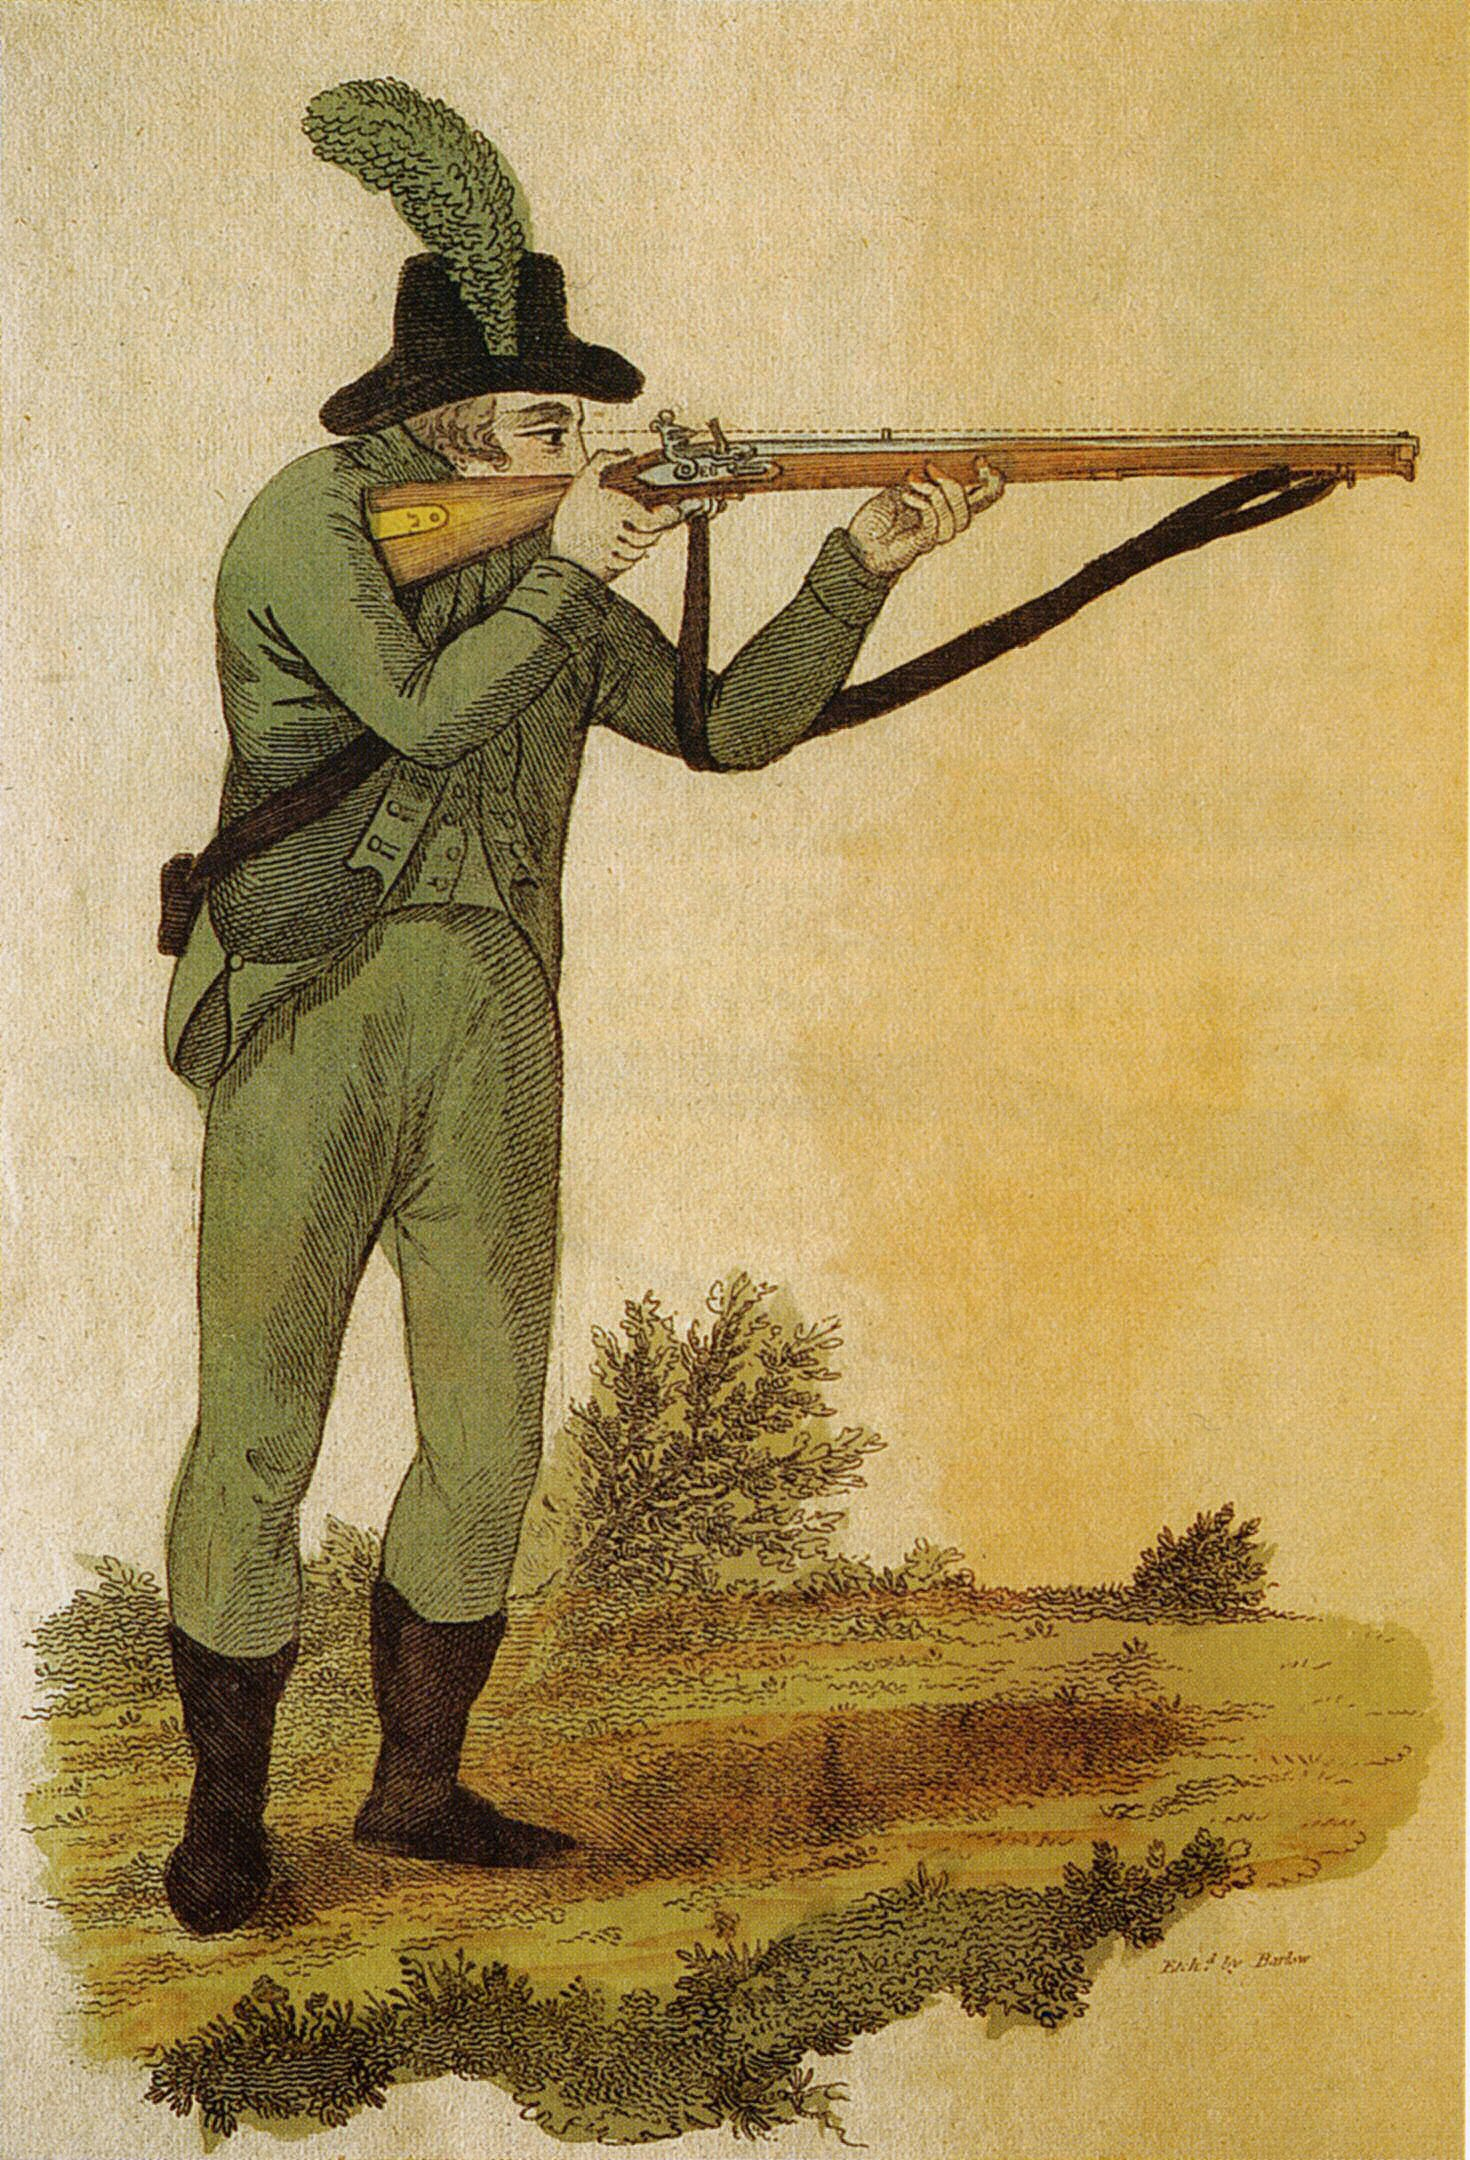 File:Green jacketed rifleman firing Baker rifle 1803.jpg